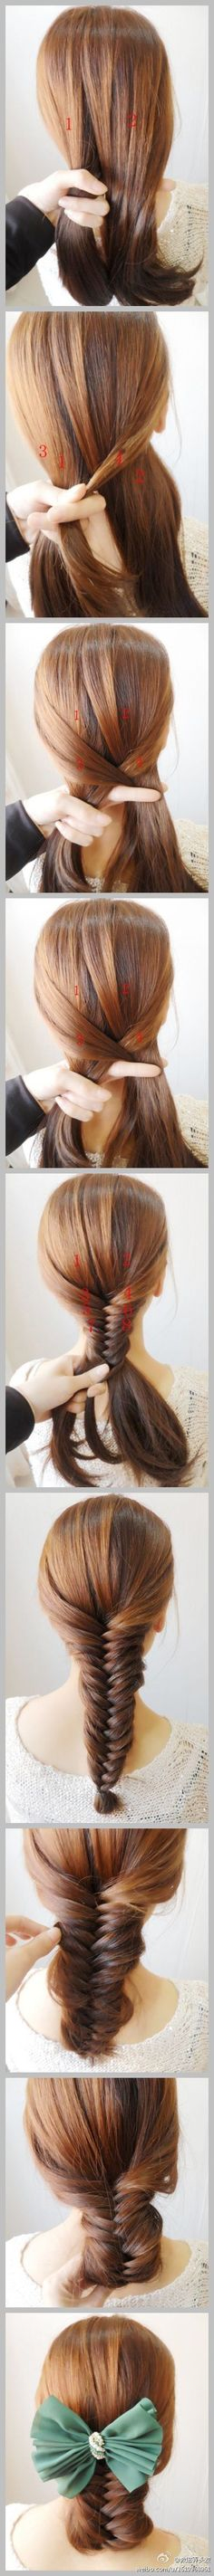 Cool Braid - the bow